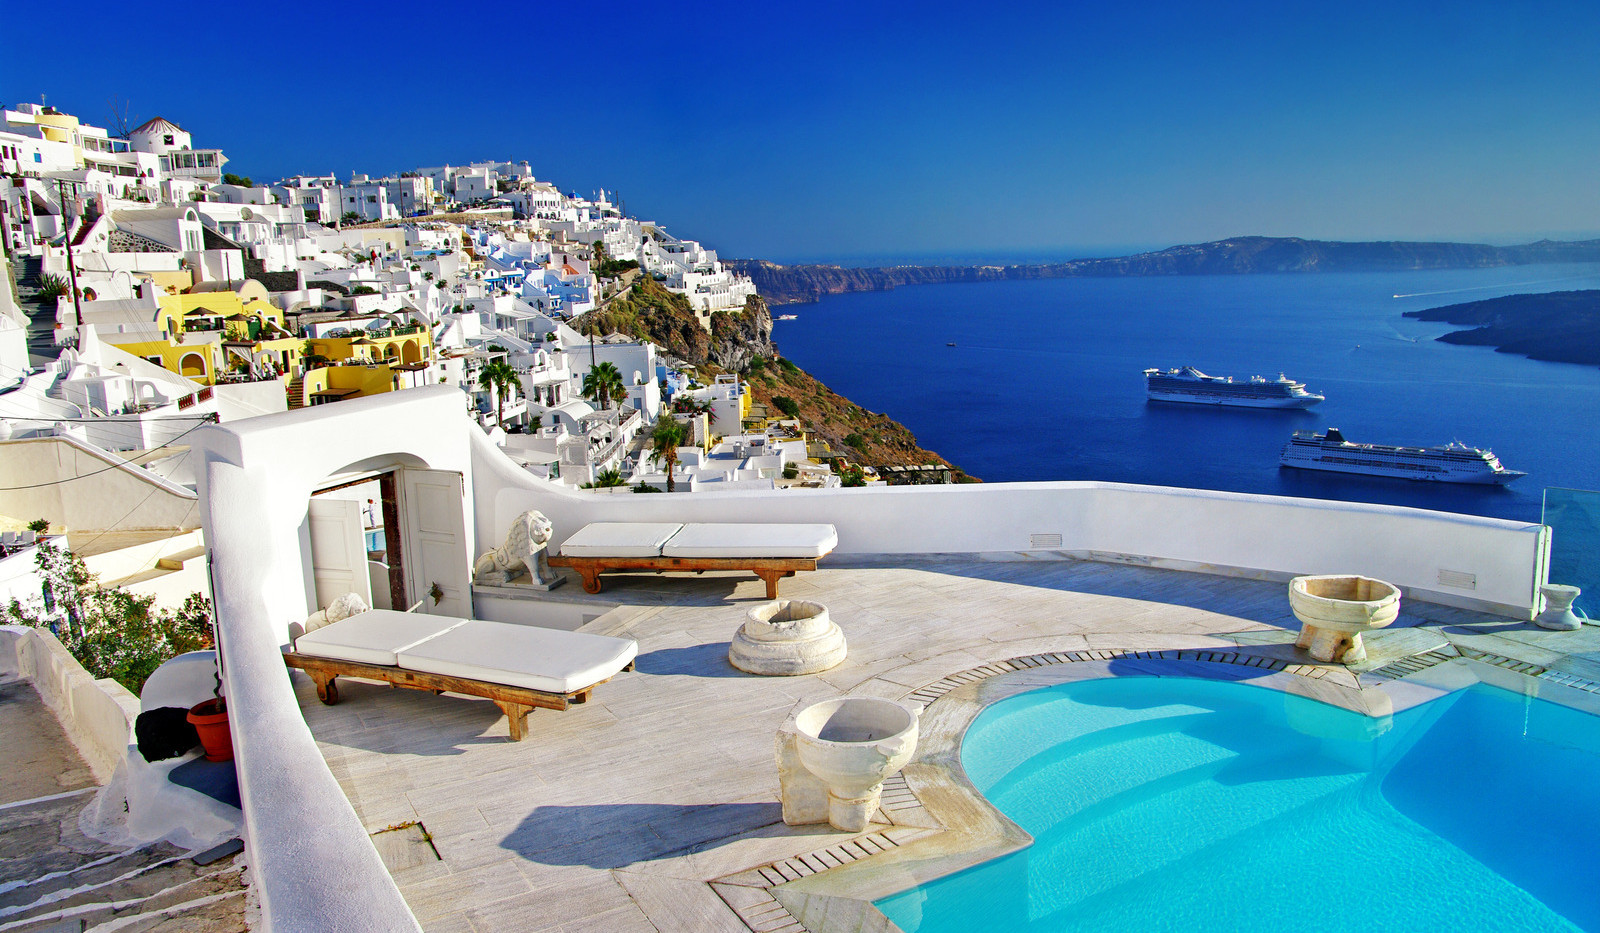 Canva - Santorini vacation.jpg